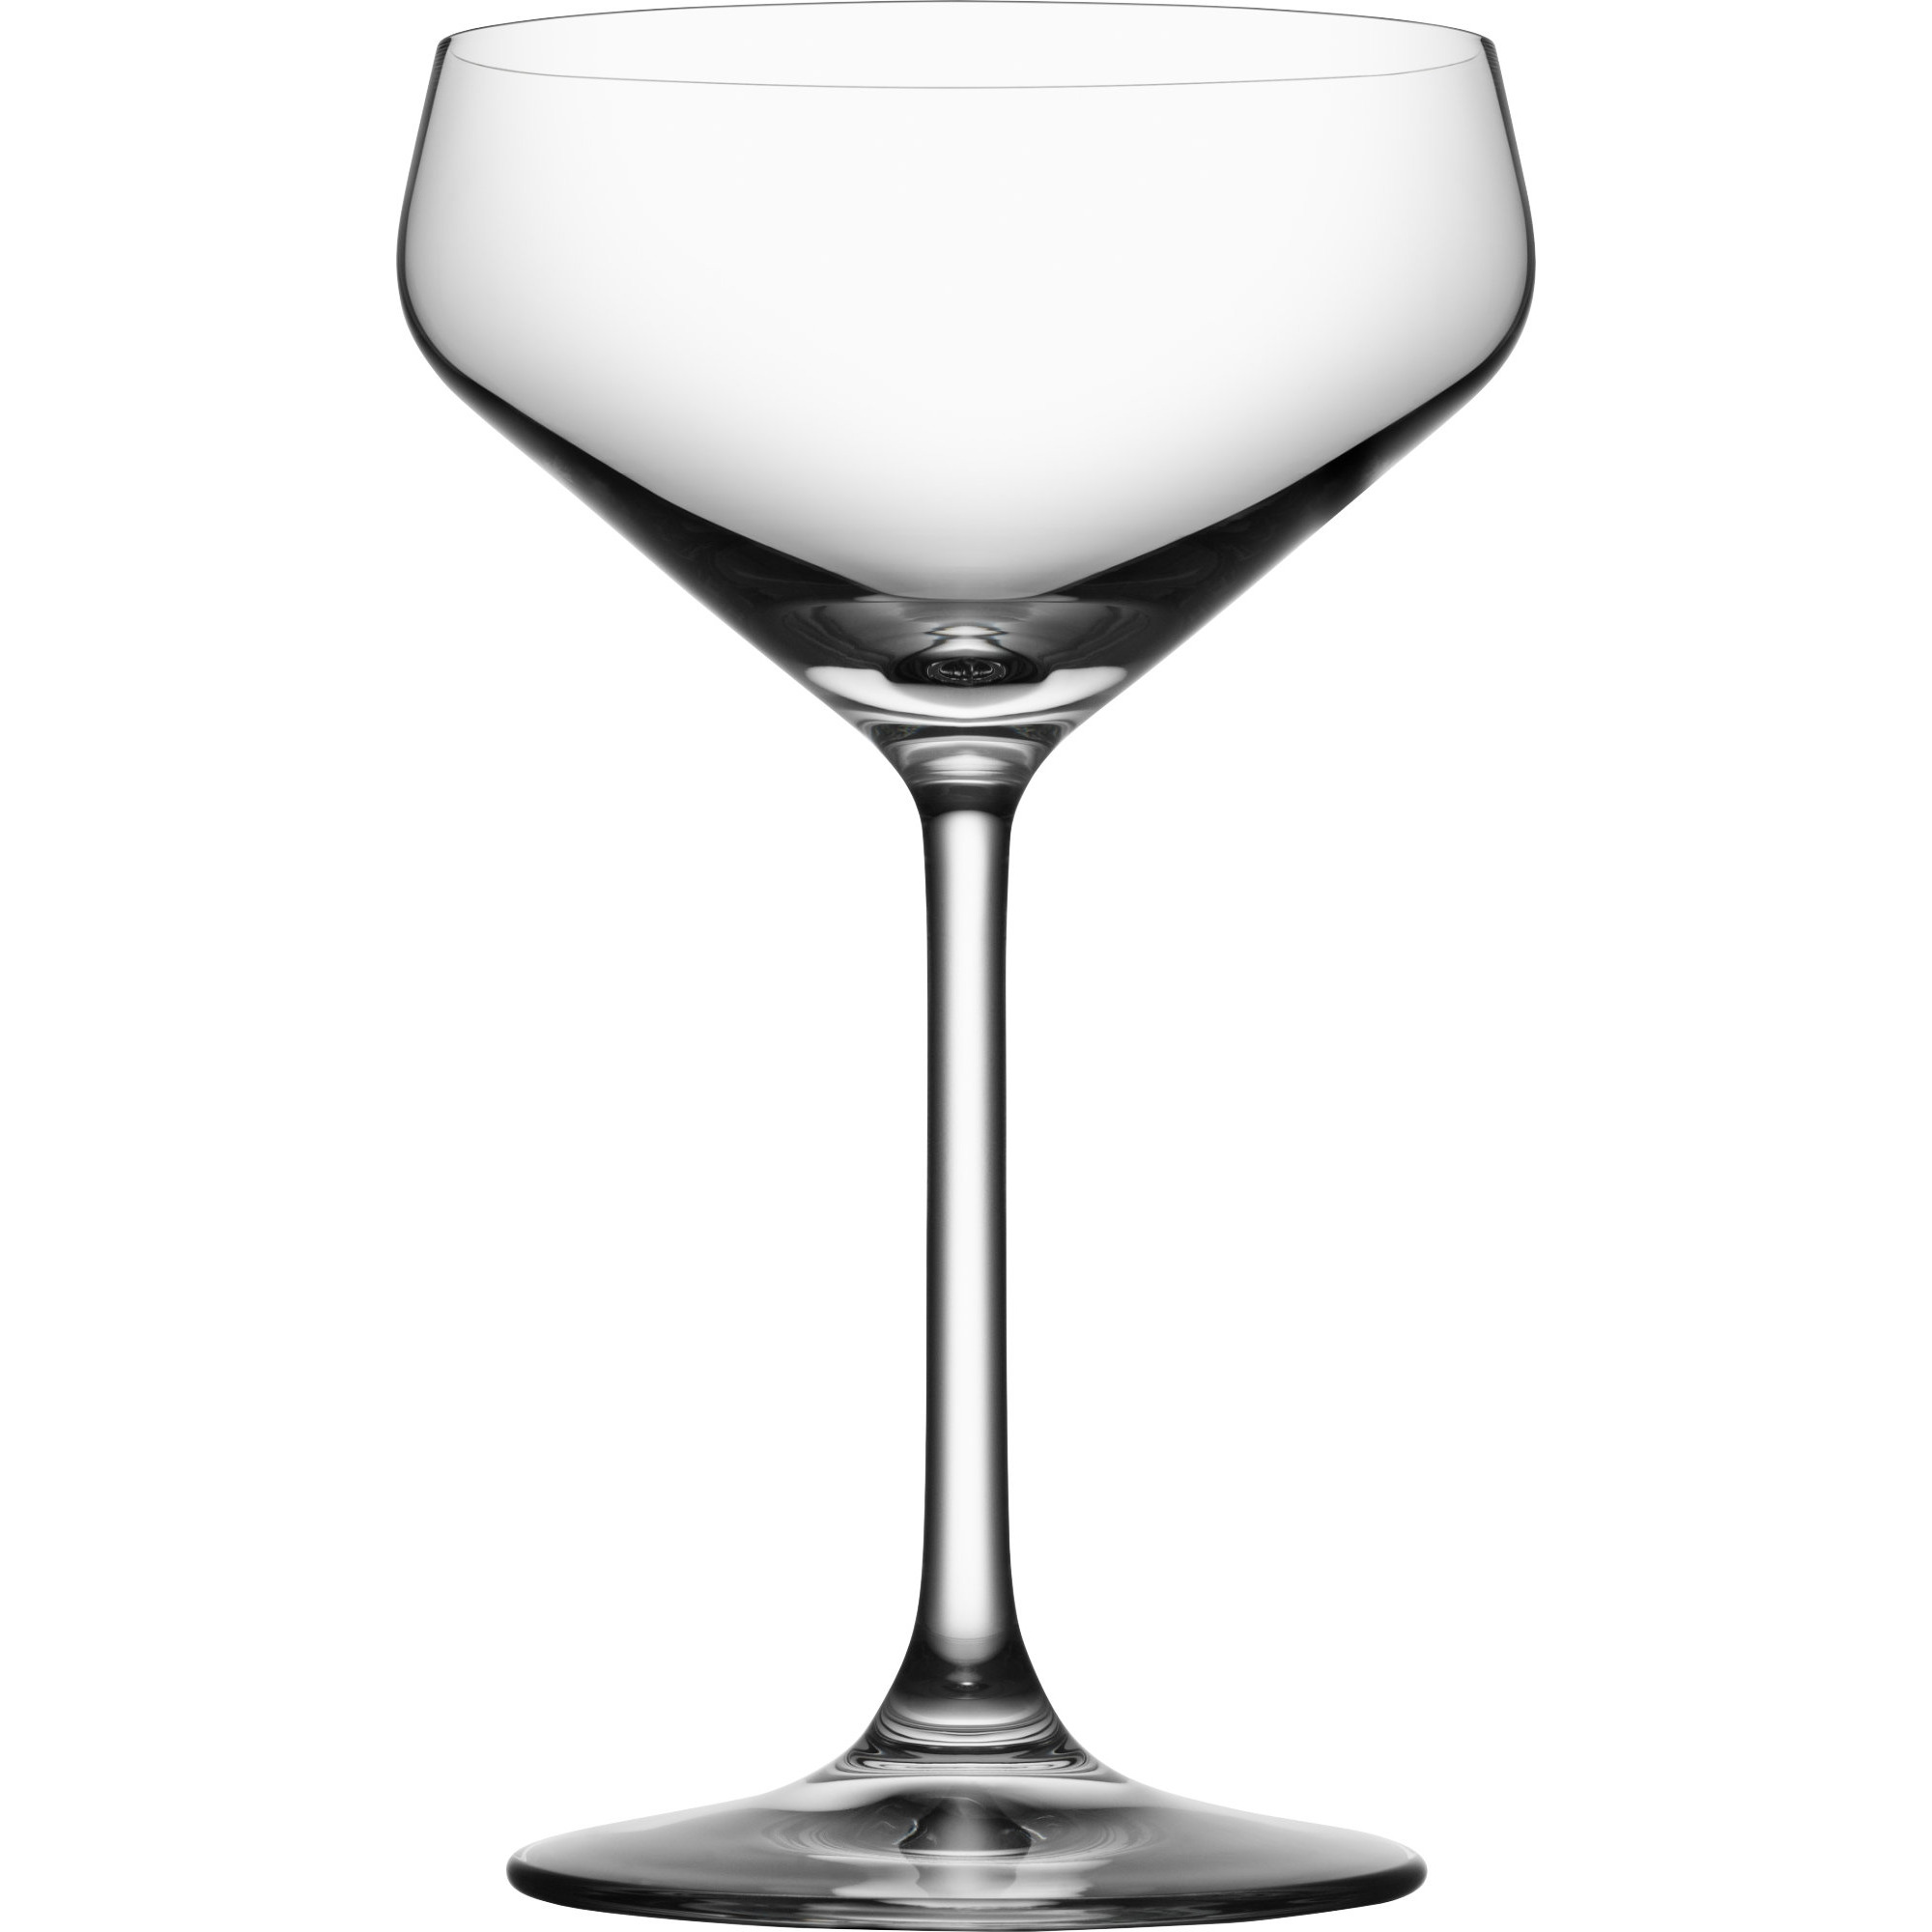 Orrefors Cocktailglas Avantgarde 4 Pack 29 cl